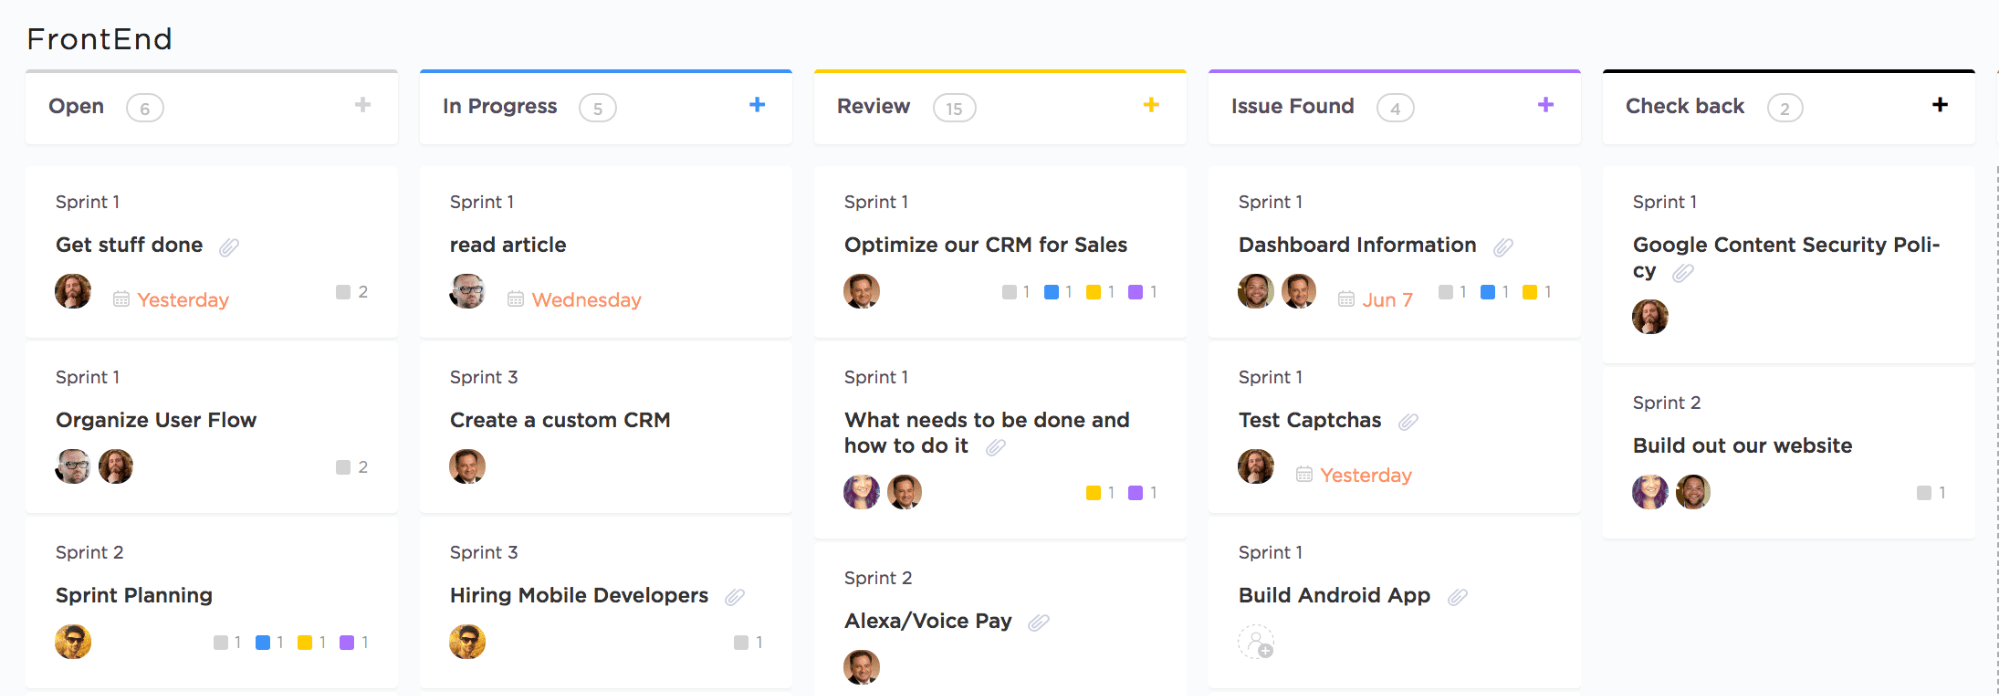 Custom fields give ClickUp users unlimited options